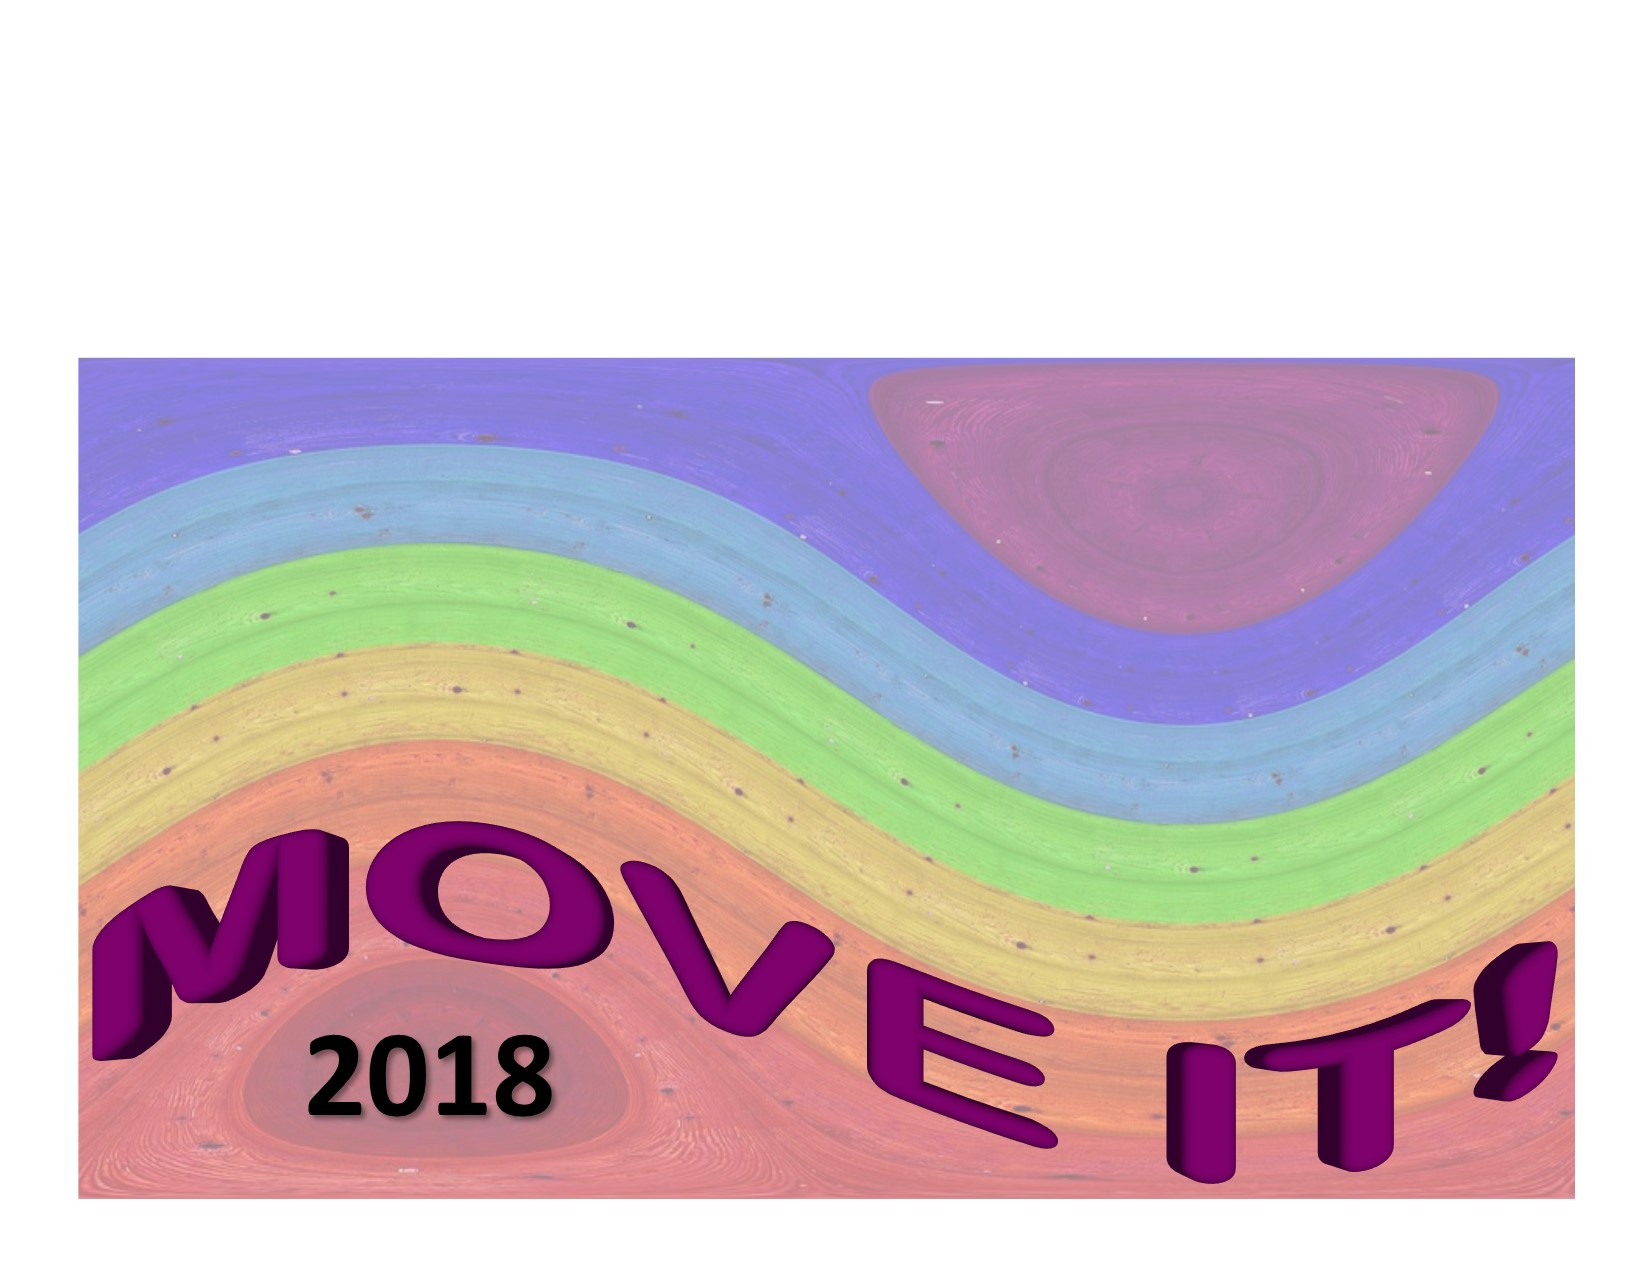 Moveitrainbow2018